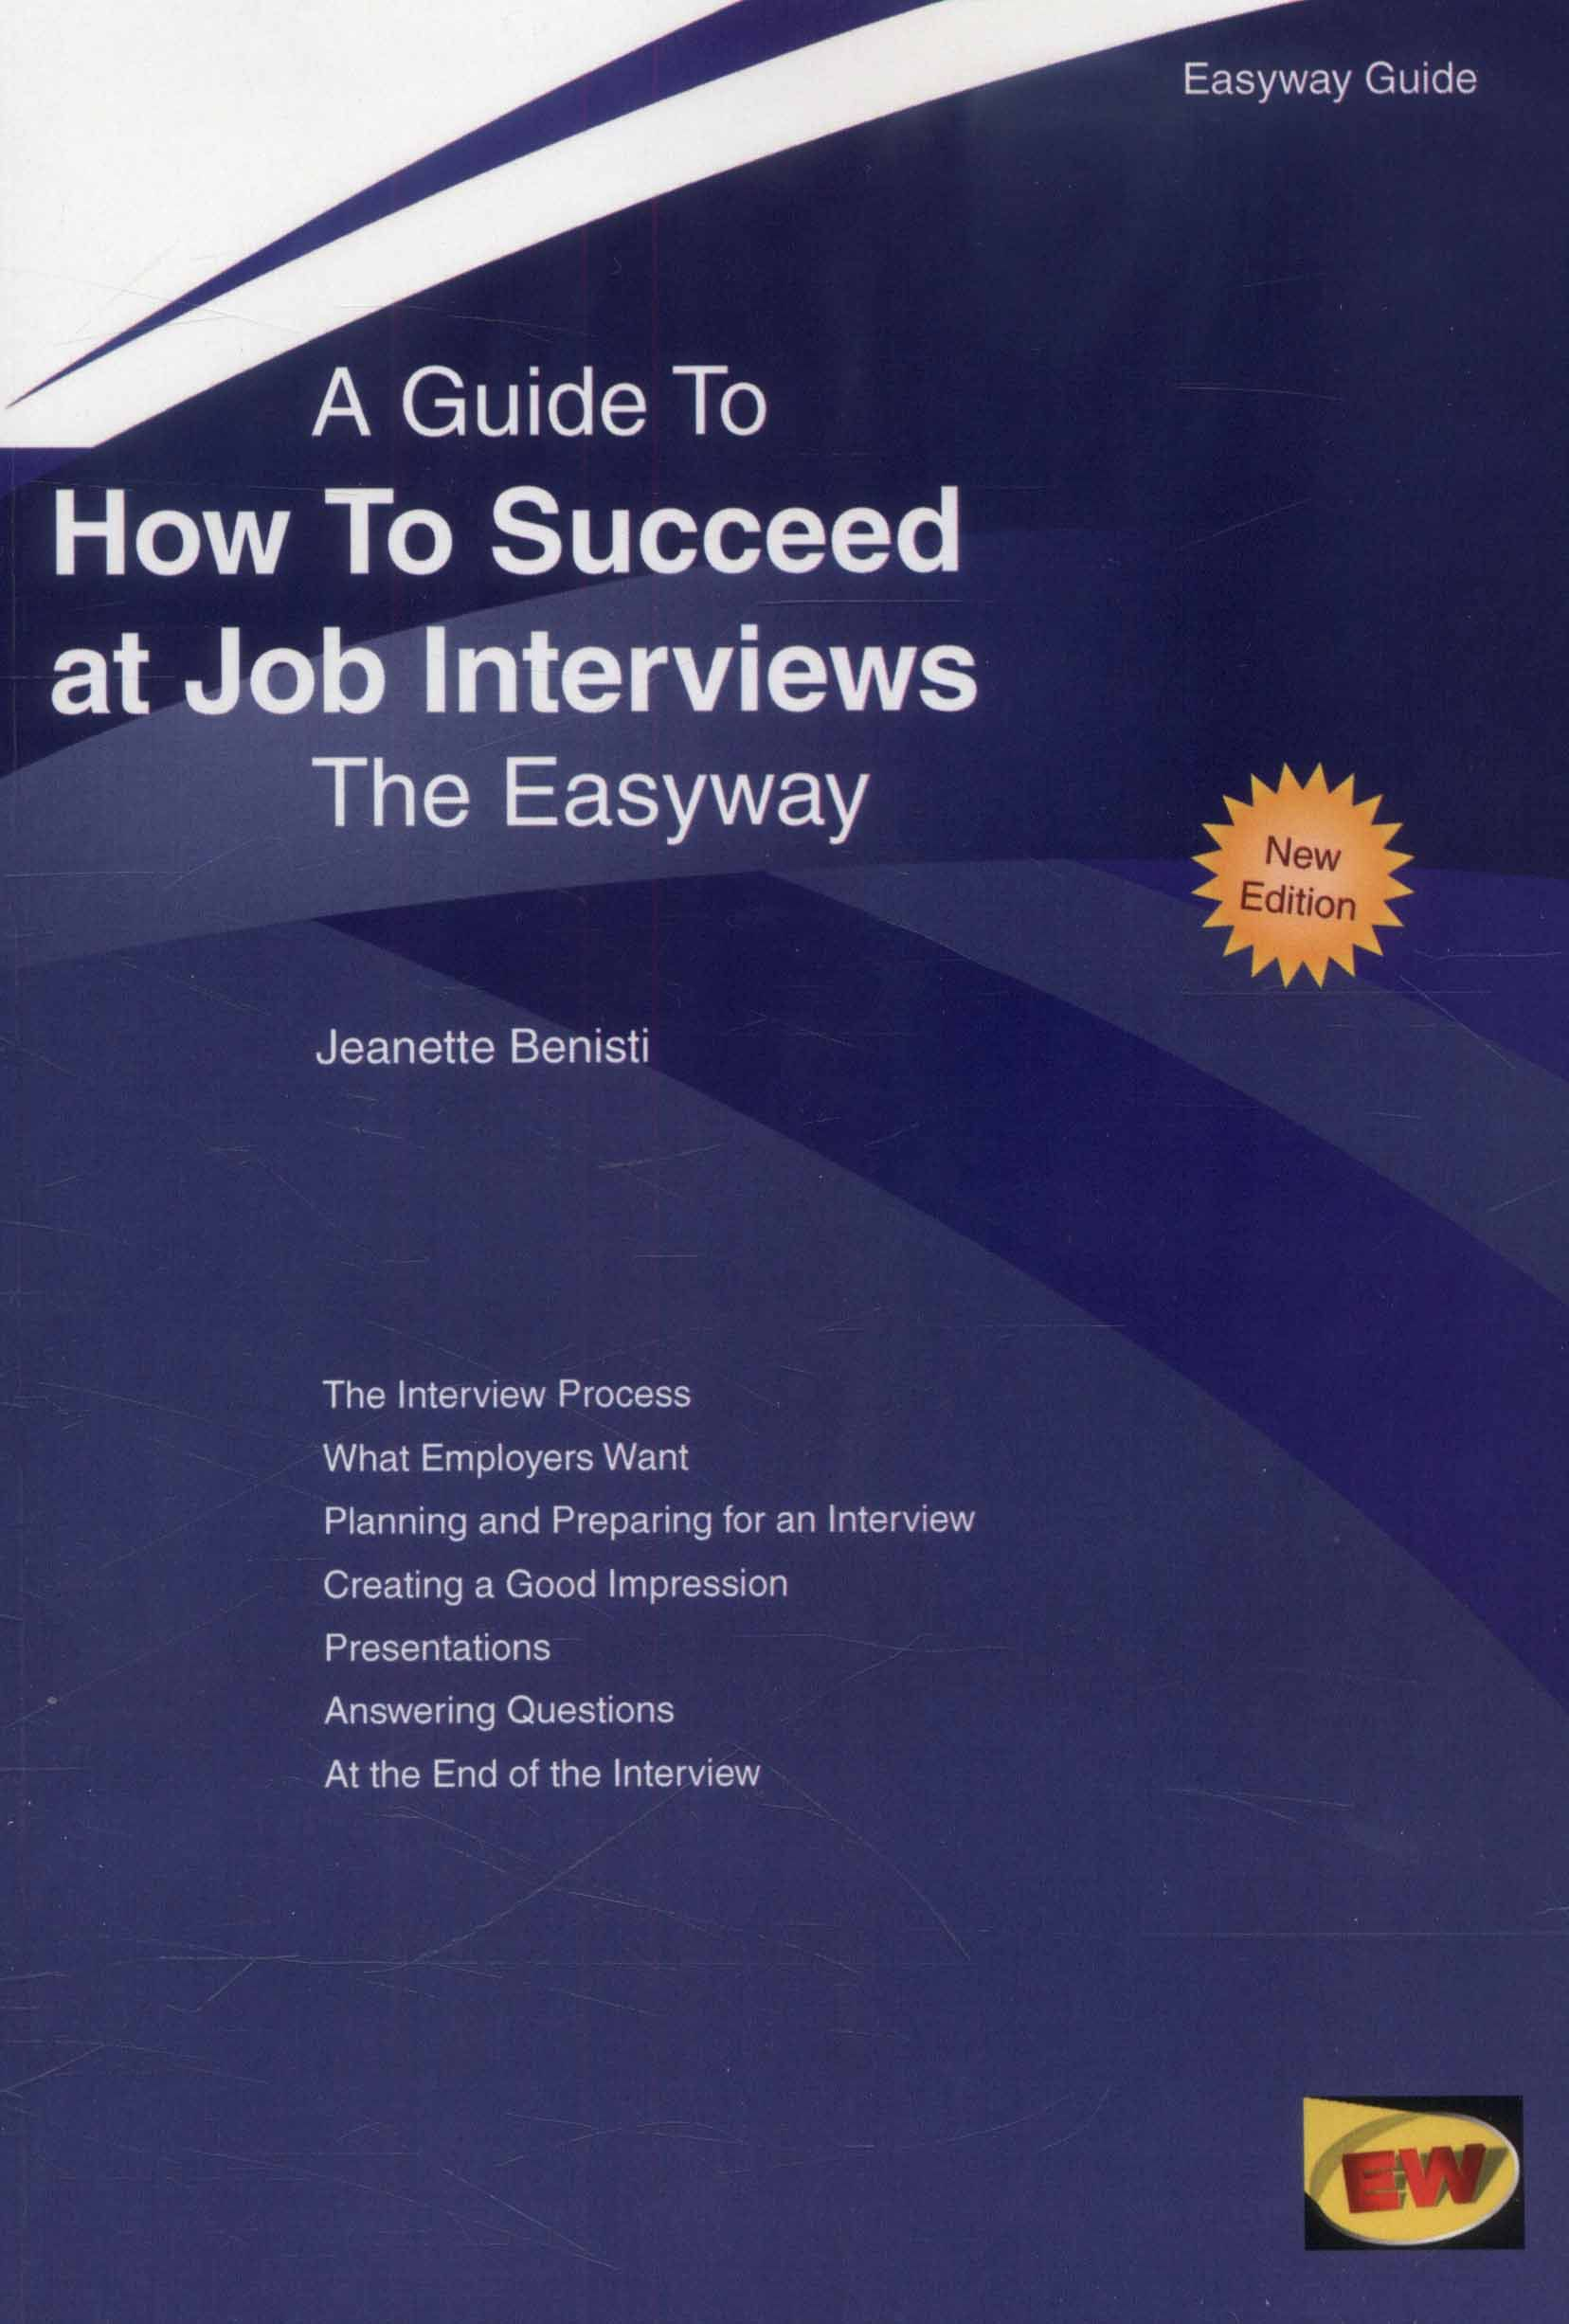 Compiled by a careers advisor who specialises in coaching